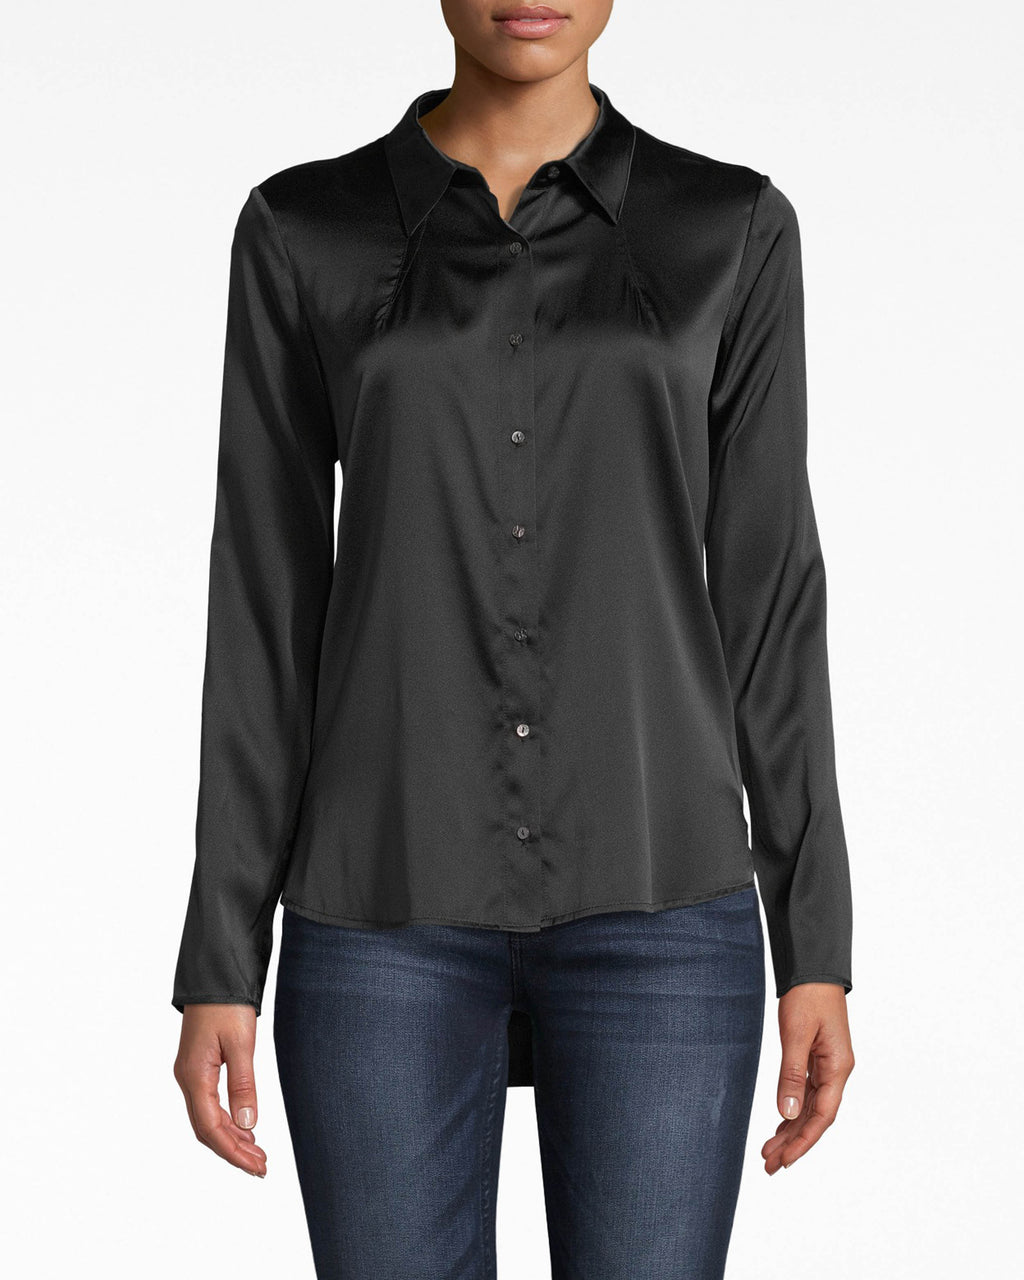 BG10305 - STRETCH CHARMEUSE BOYFRIEND SHIRT - tops - blouses - Add to your boyfriend shirt collection. This one comes in a rich stretch charmeuse that looks like it's glistening. Exposed buttons for closure.